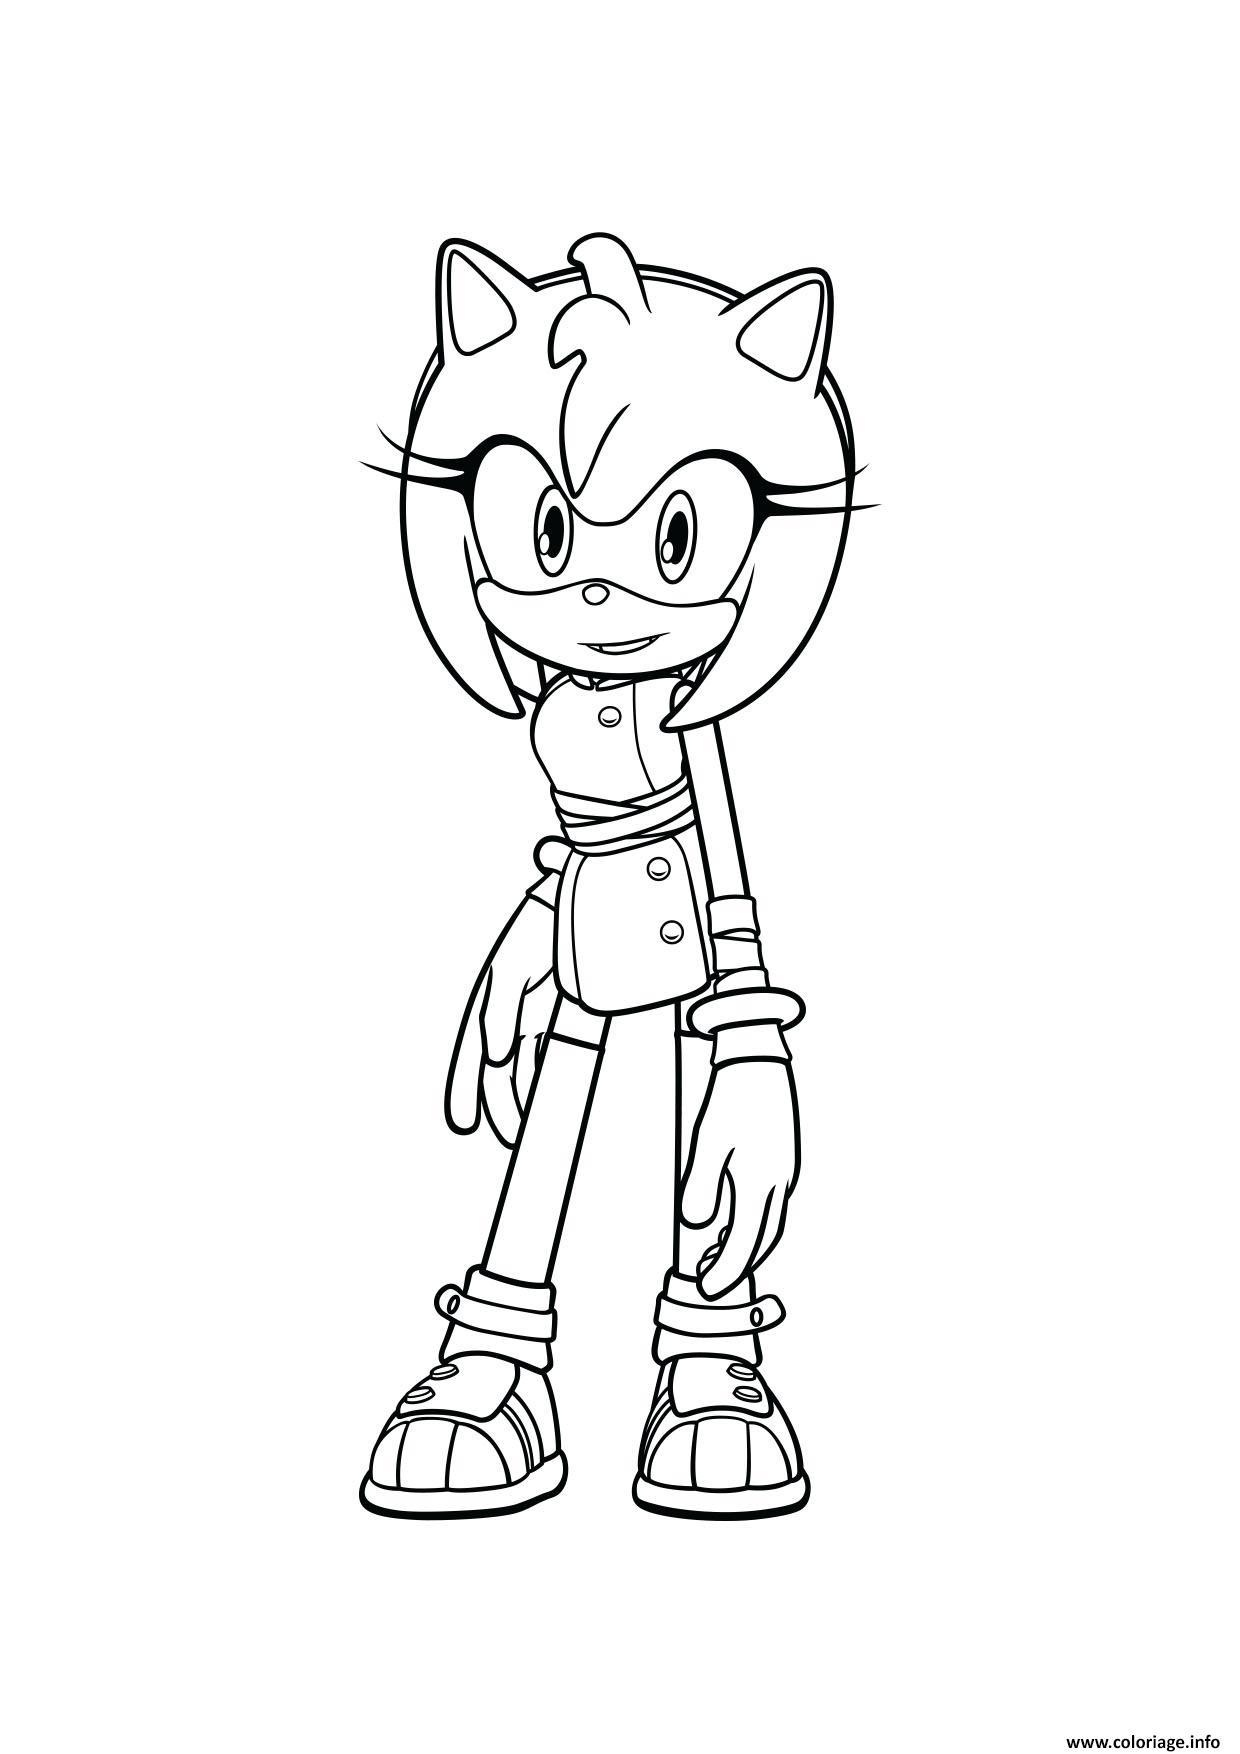 Coloriage sonic amy dessin - Grand dessin a colorier ...